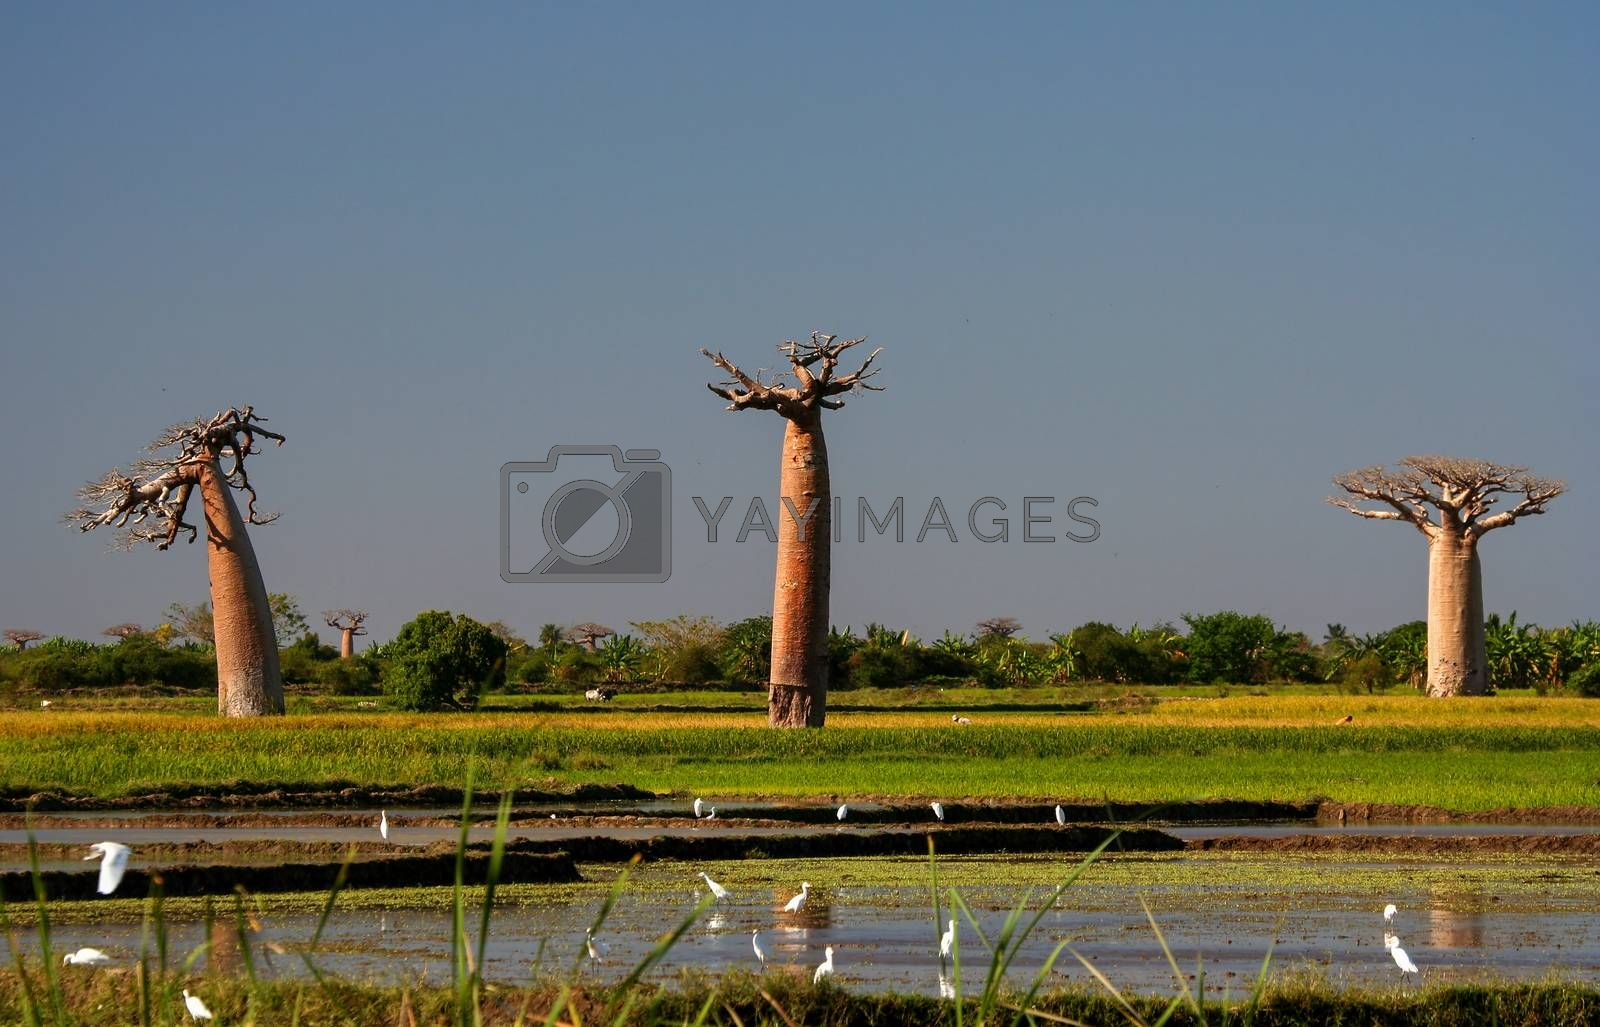 Royalty free image of Wetlands and baobabs by pawopa3336